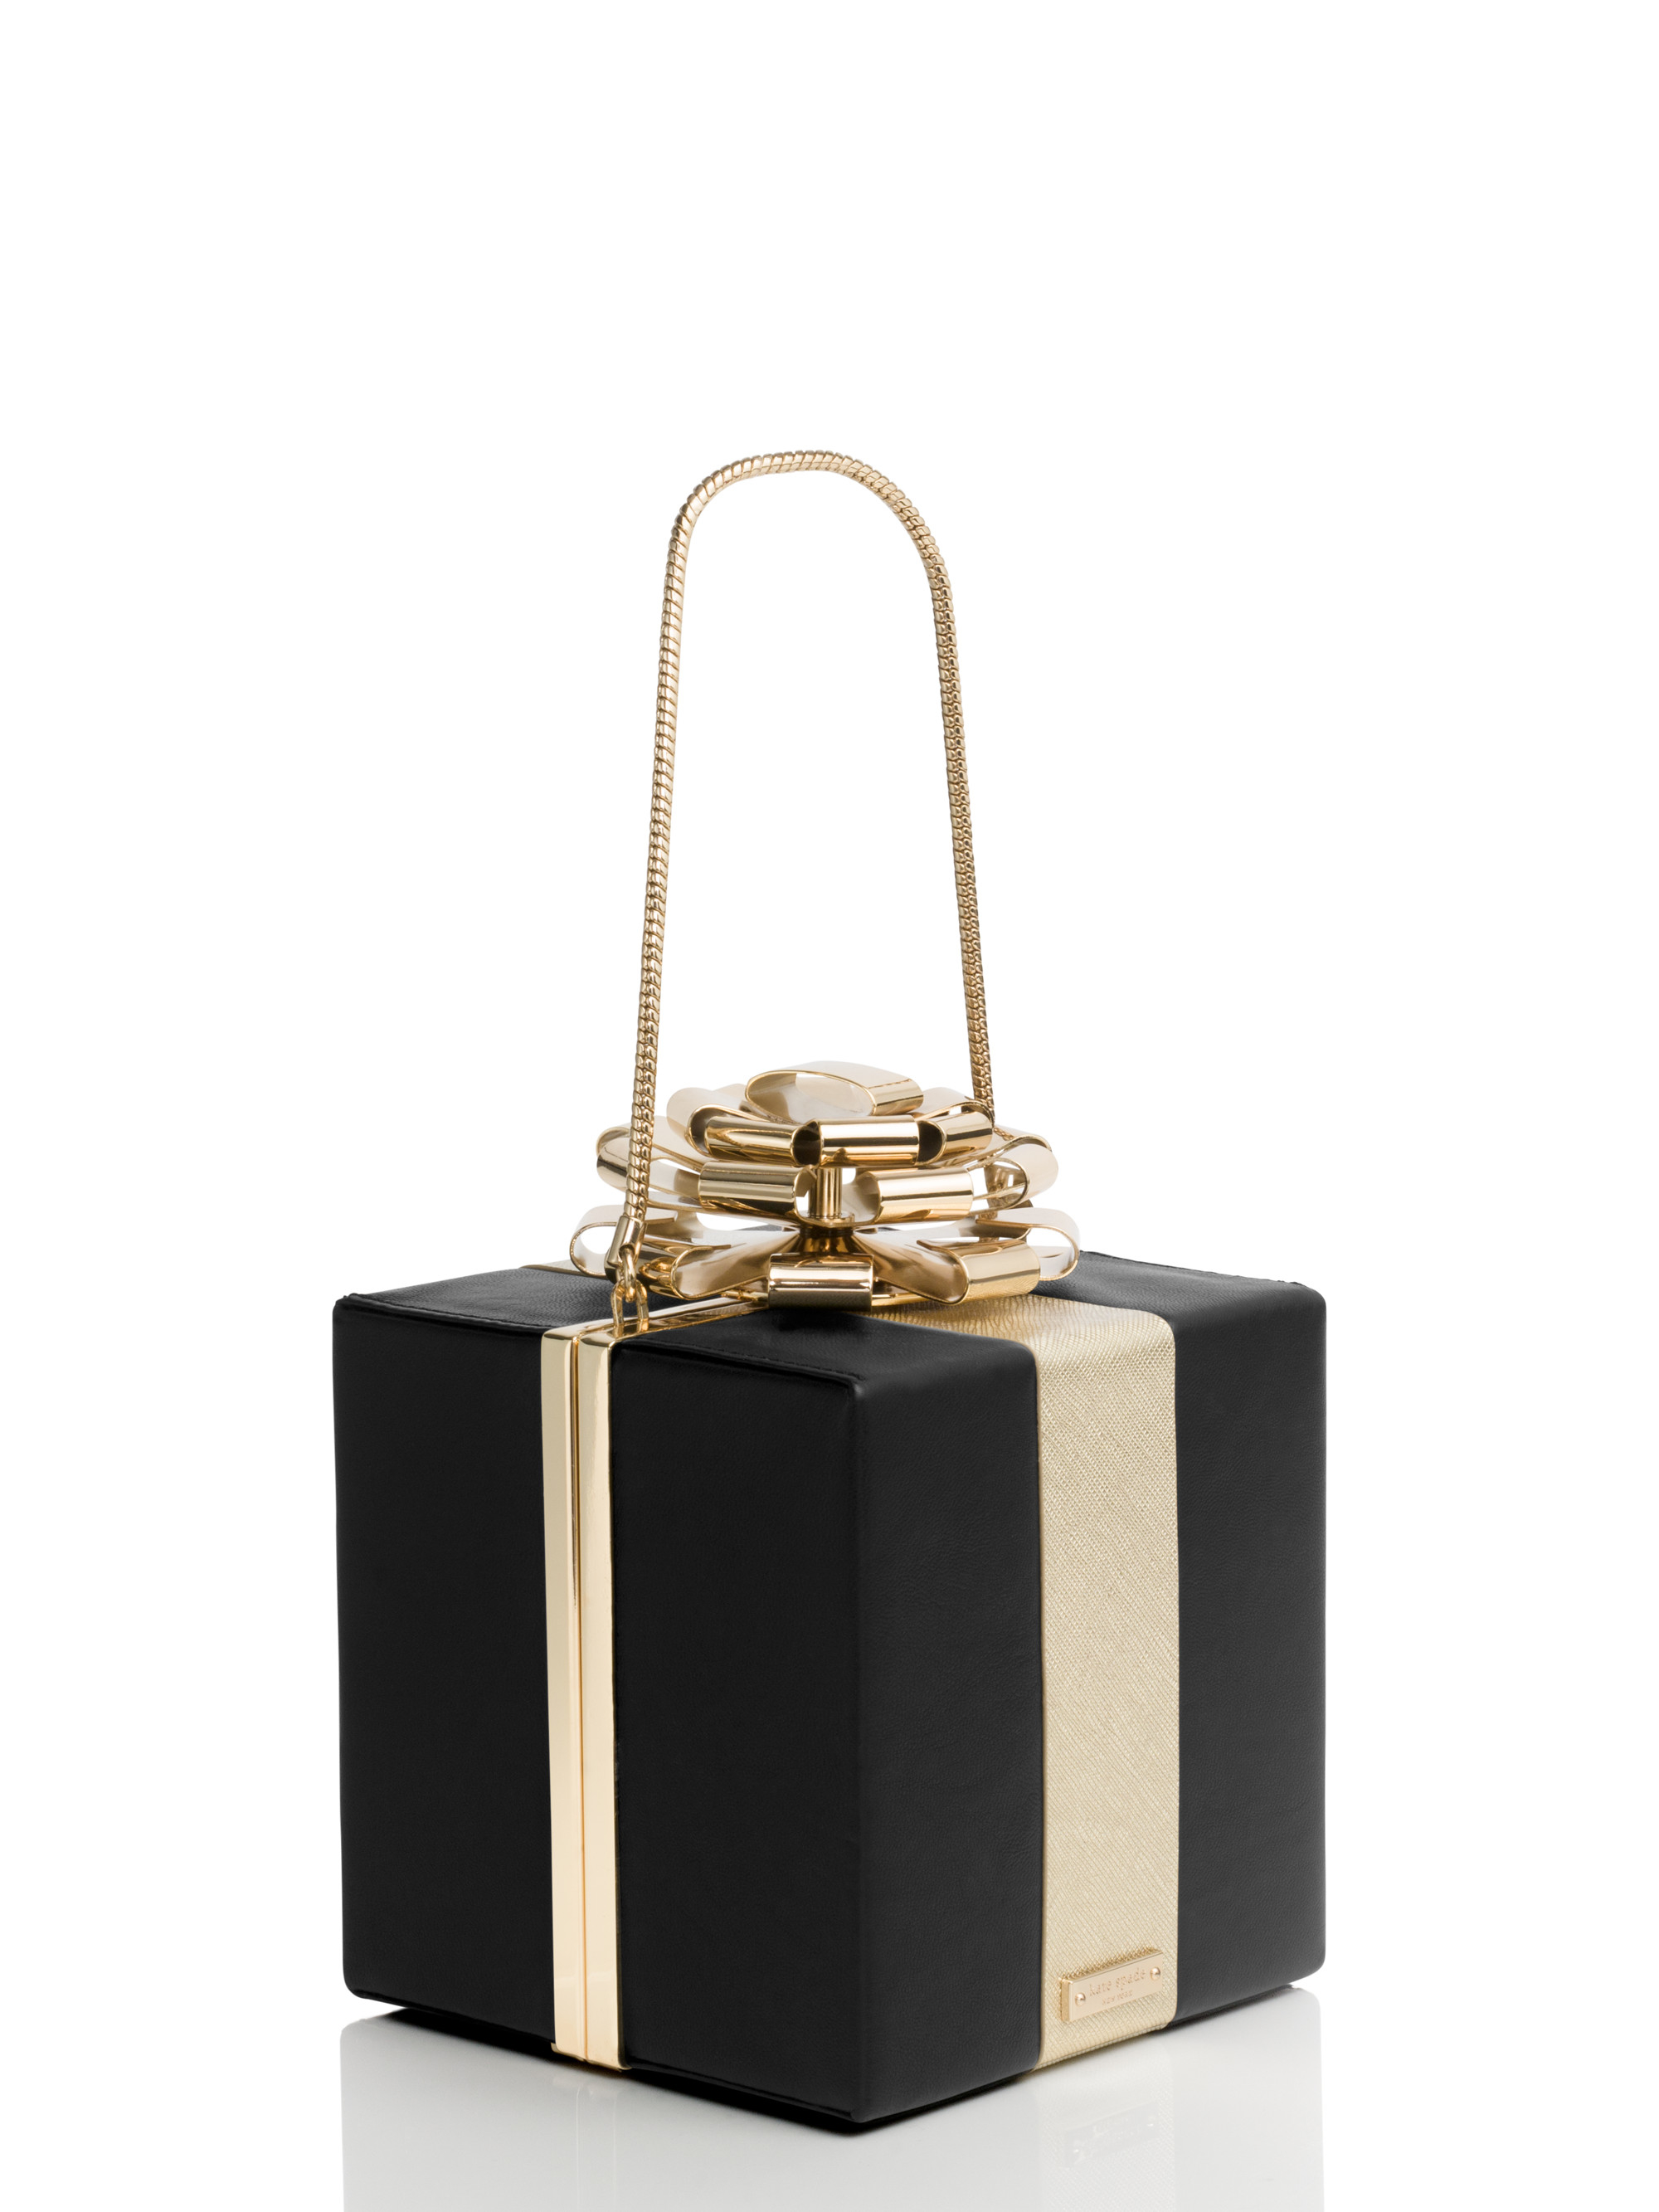 Kate spade new york Square Gift Box Clutch in Black | Lyst Kate Hudson Activewear